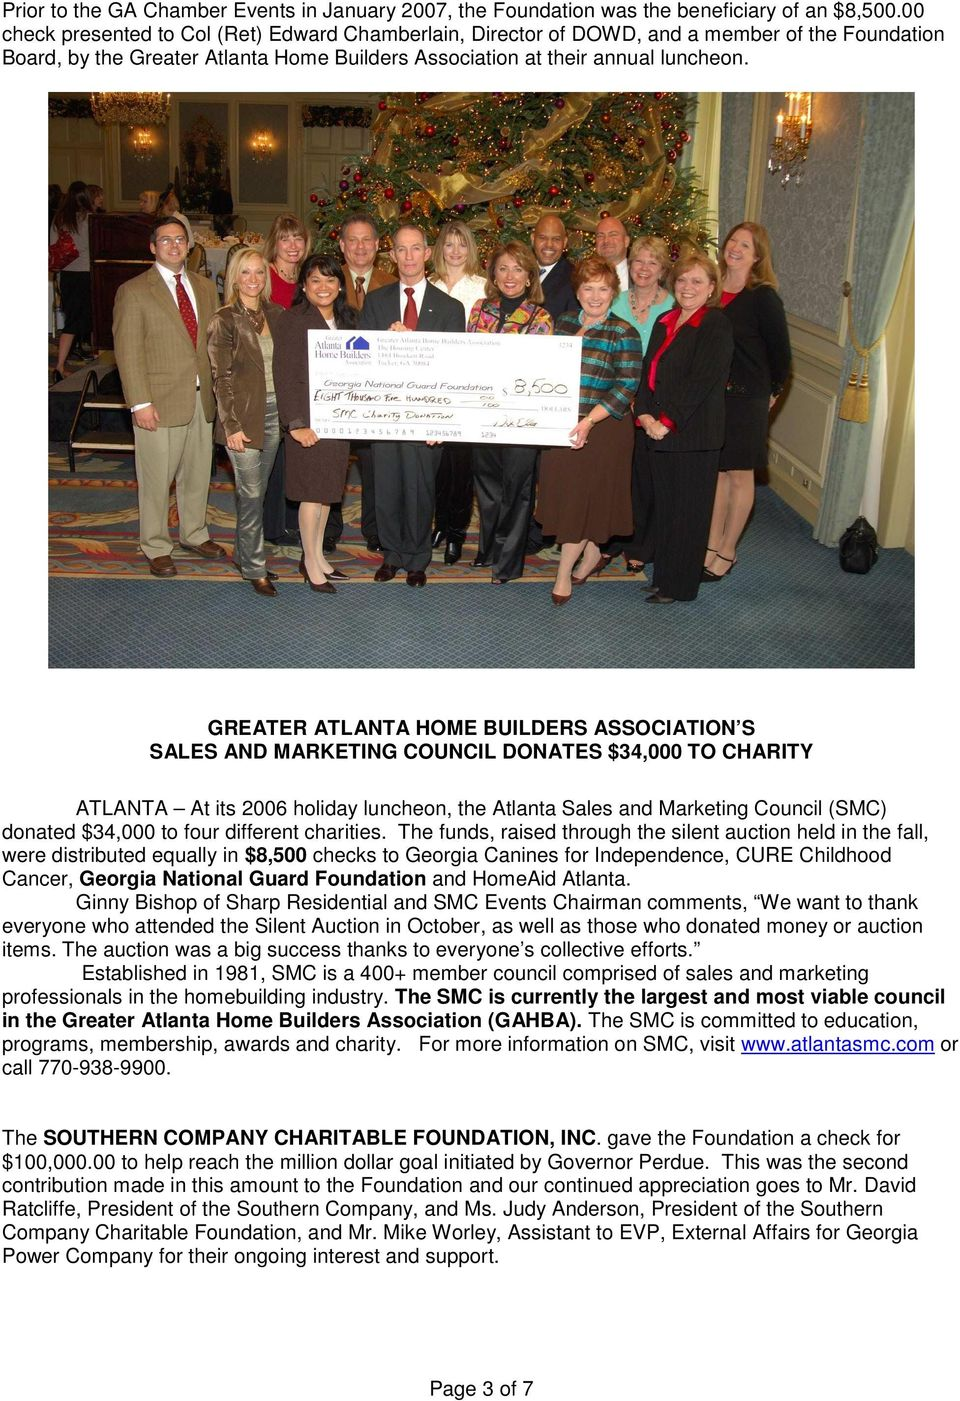 GREATER ATLANTA HOME BUILDERS ASSOCIATION S SALES AND MARKETING COUNCIL DONATES $34,000 TO CHARITY ATLANTA At its 2006 holiday luncheon, the Atlanta Sales and Marketing Council (SMC) donated $34,000